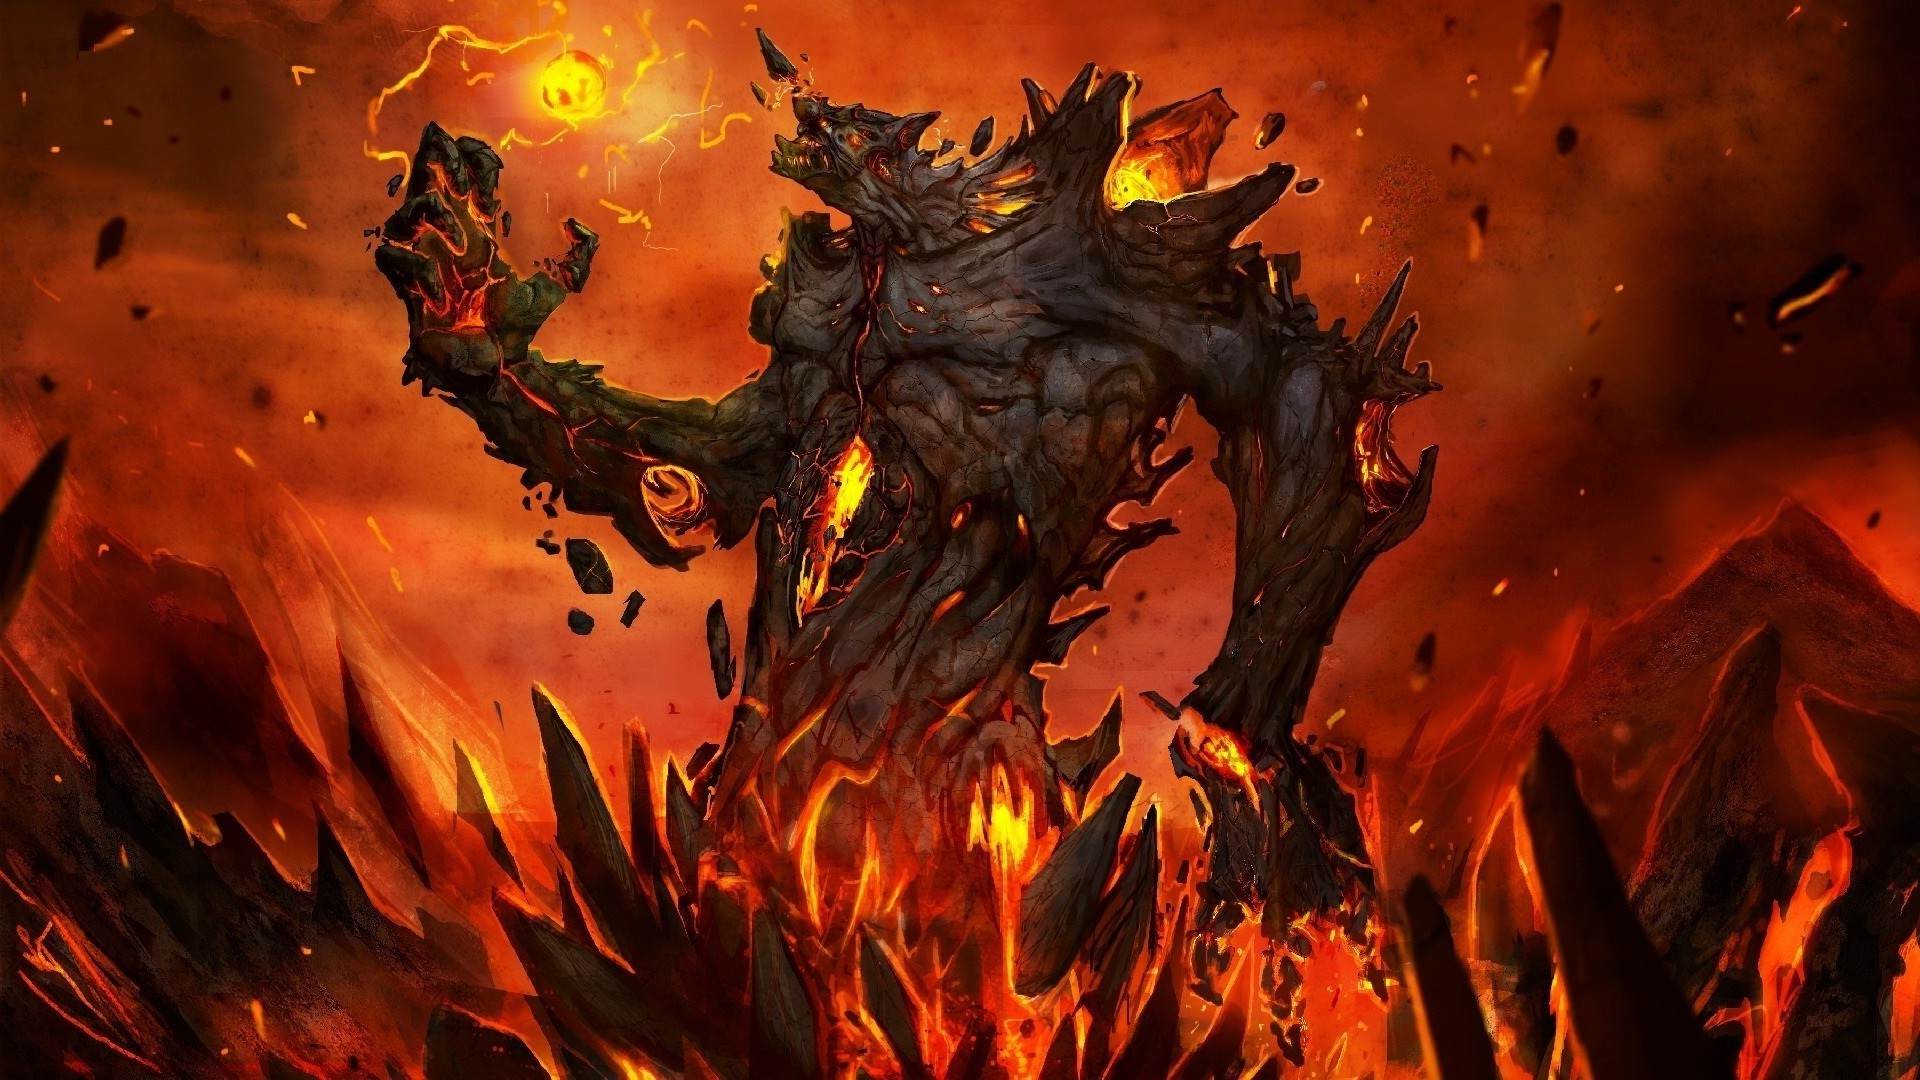 Download Fantasy Lava HD Wallpapers for Free, RyylxJW · Wallpaper  BackgroundsWallpaper ForDungeons And DragonsLava